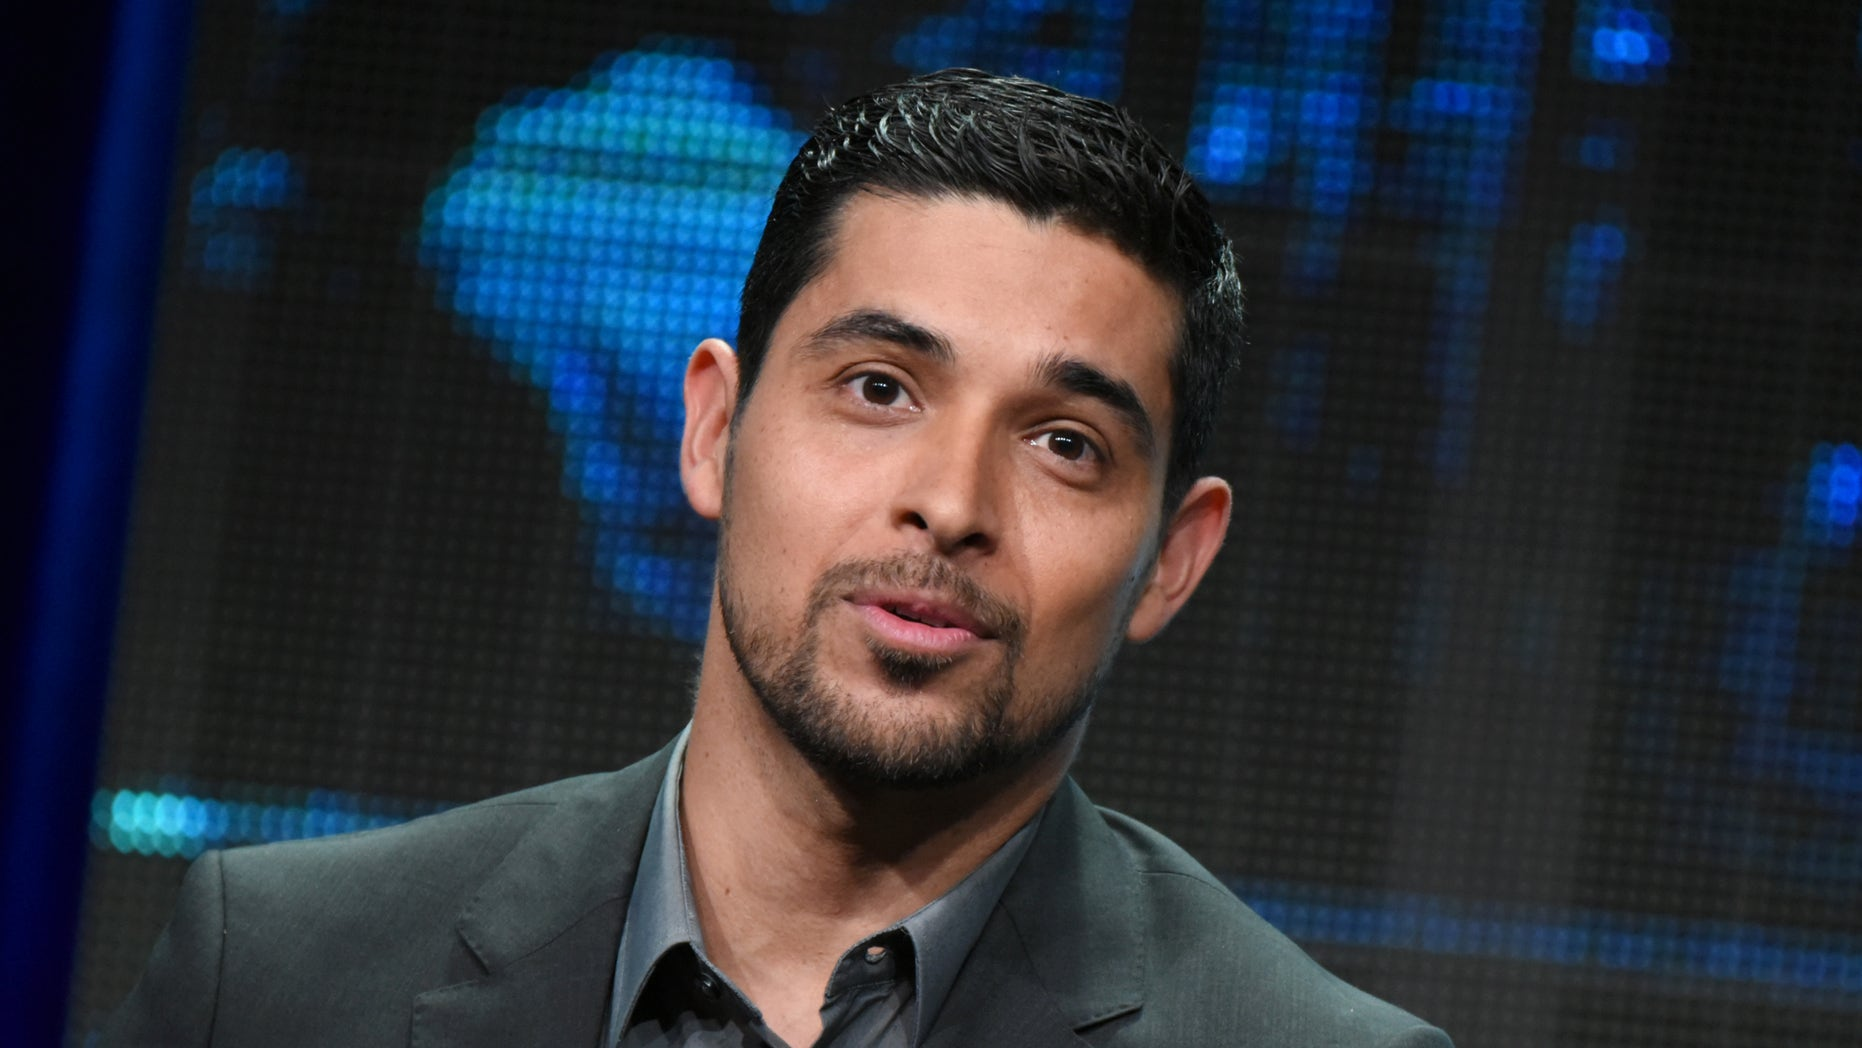 """Wilmer Valderrama participates in the """"Minority Report"""" panel at the Fox Summer TCA Tour at the Beverly Hilton Hotel on Thursday, Aug. 6, 2015, in Beverly Hills, Calif. (Photo by Richard Shotwell/Invision/AP)"""